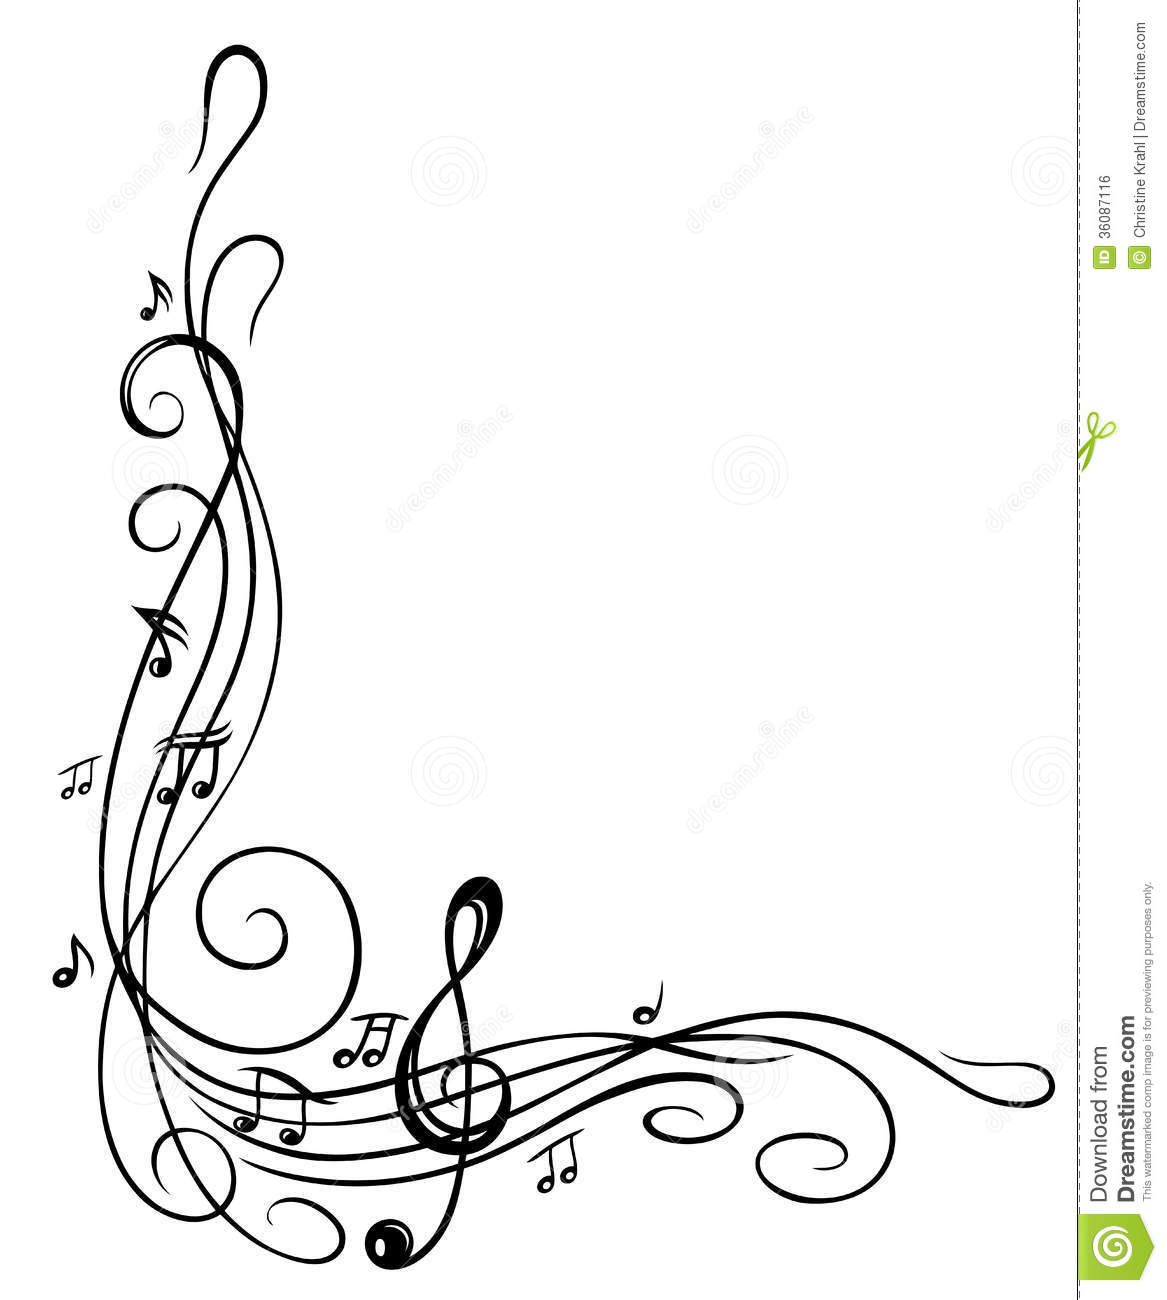 Clef Music Sheet Stock Vector Illustration Of Disco